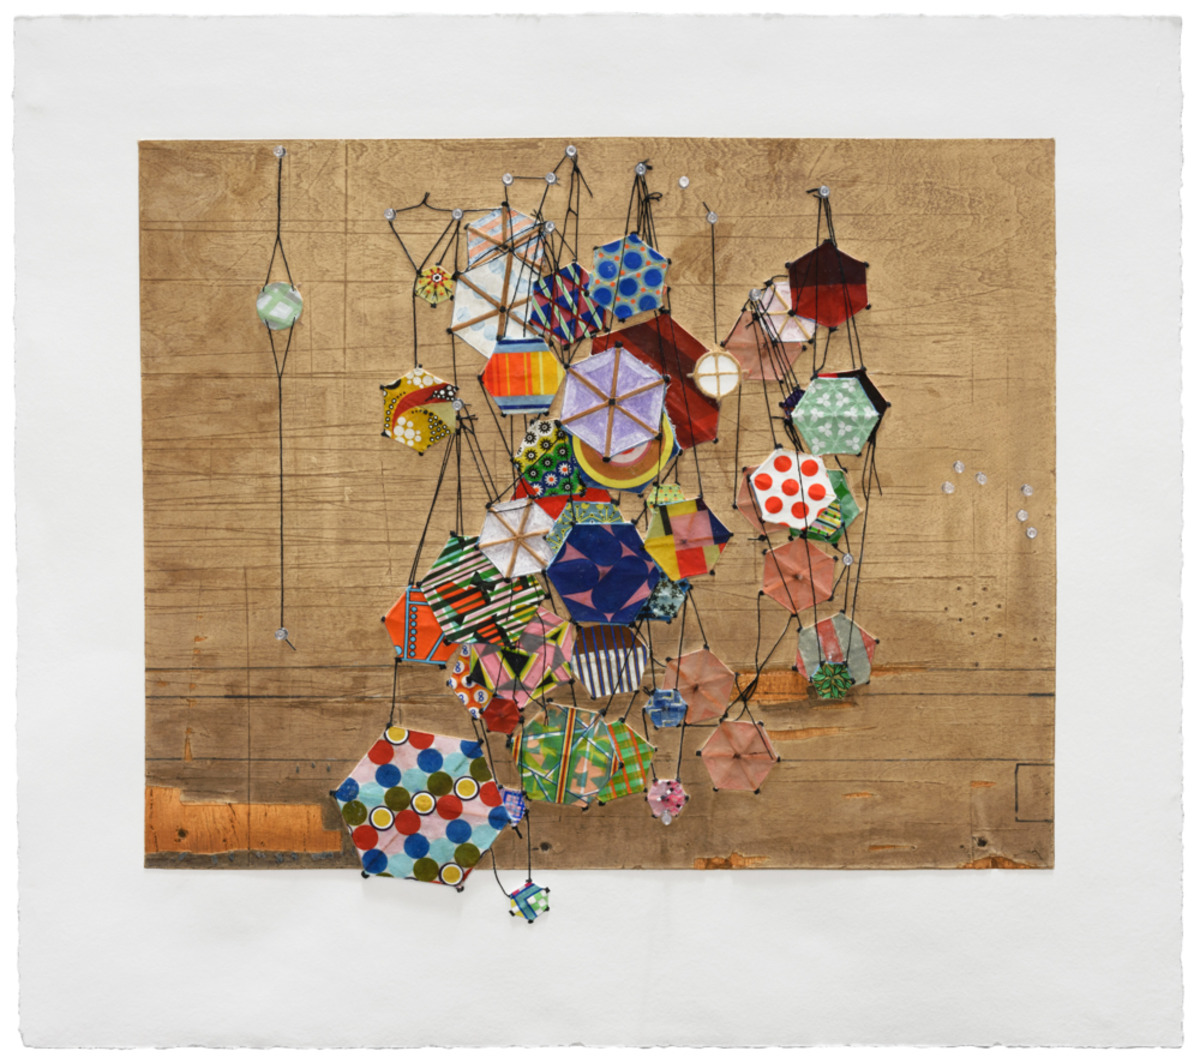 Tiny Rooms and Tender Promises ,2016   Mixografia print on handmade paper and archival pigment print with pushpins   33.25 X 37.25 inches      Edition of 27